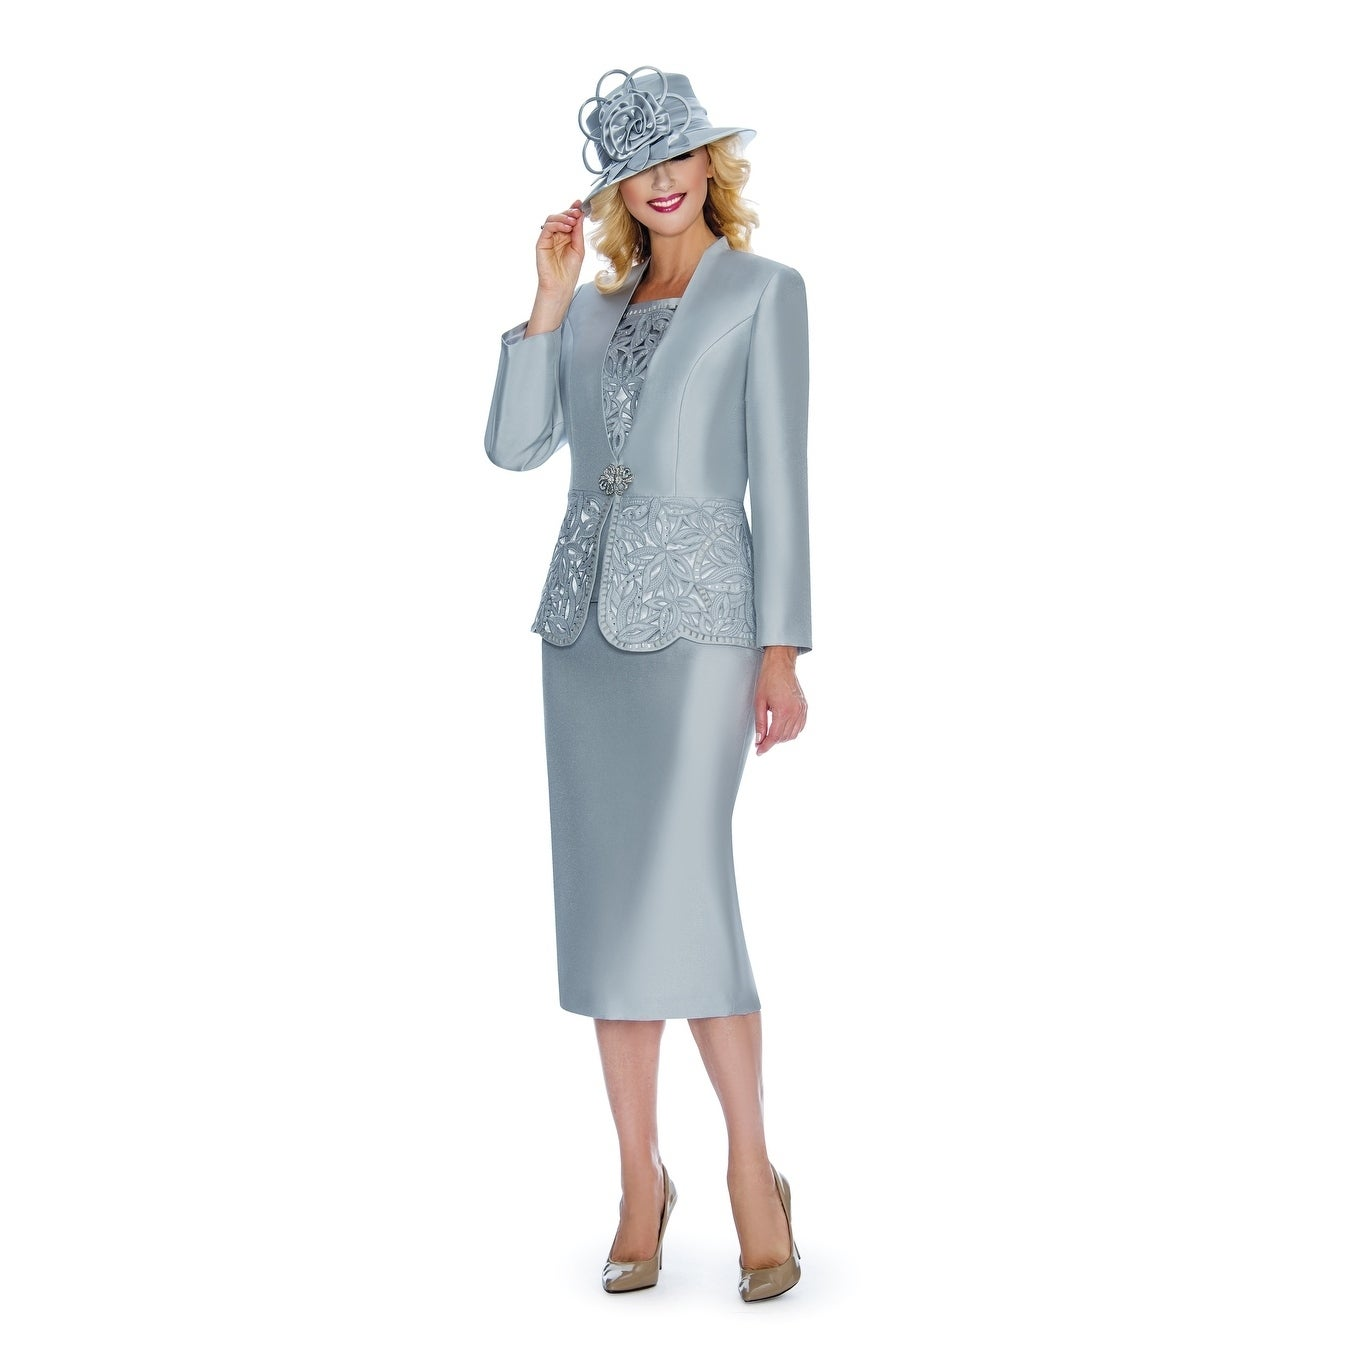 Fashion Dark Blue Blazer Women Business Suits Formal Office Suits Work Wear Pant And Jacket Sets Beauty Salon Uniforms Delicacies Loved By All Suits & Sets